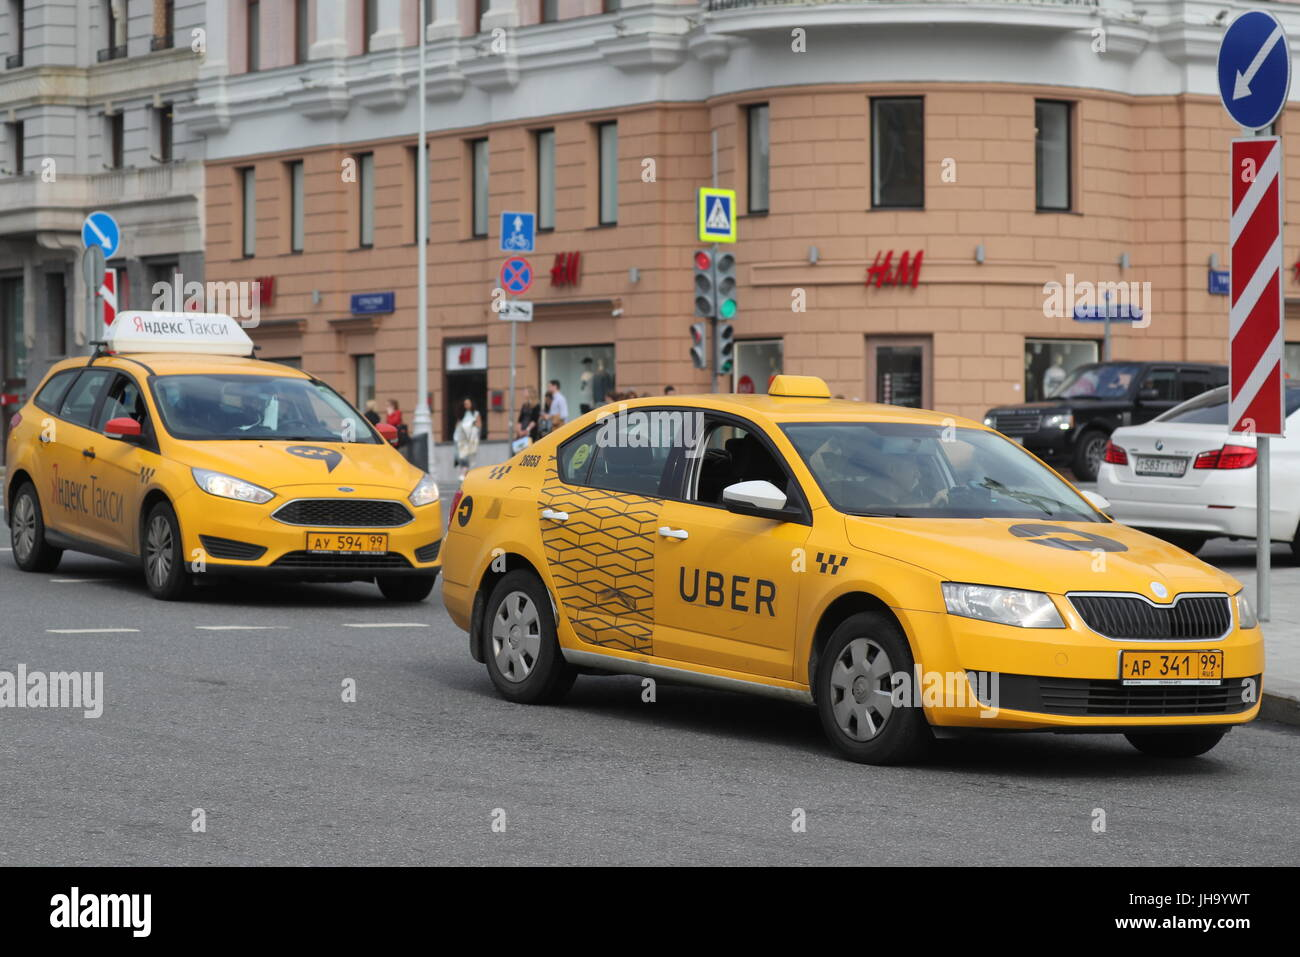 Moscow, Russia  13th July, 2017  Yandex Taxi and Uber taxicabs in a